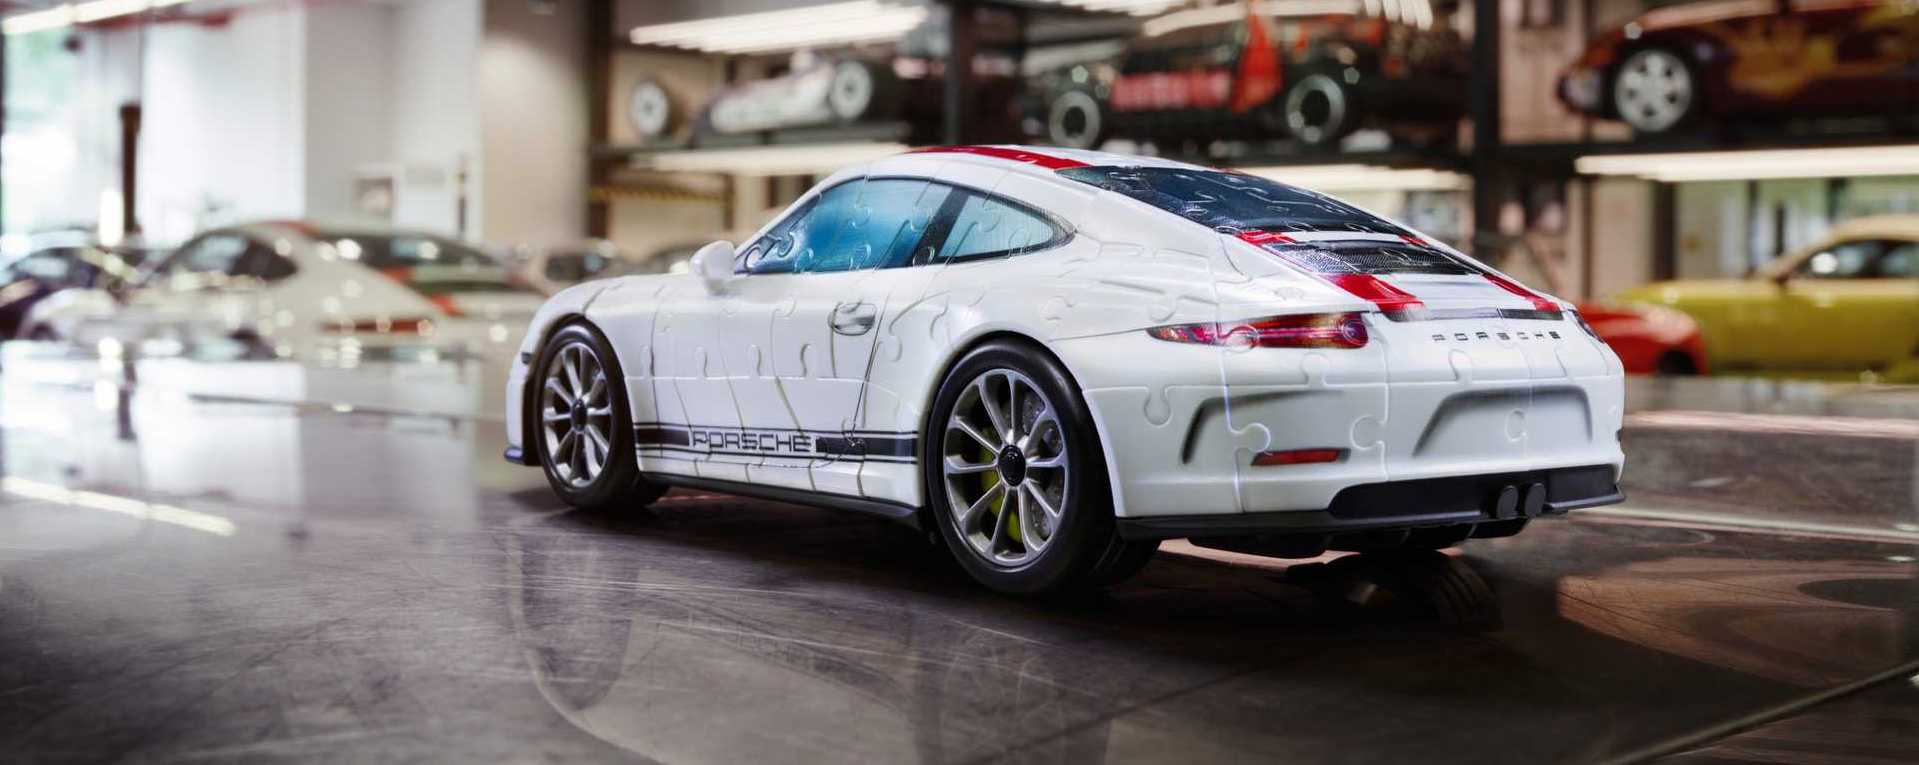 porsche 911 r disponible en puzzle 3d les voitures. Black Bedroom Furniture Sets. Home Design Ideas